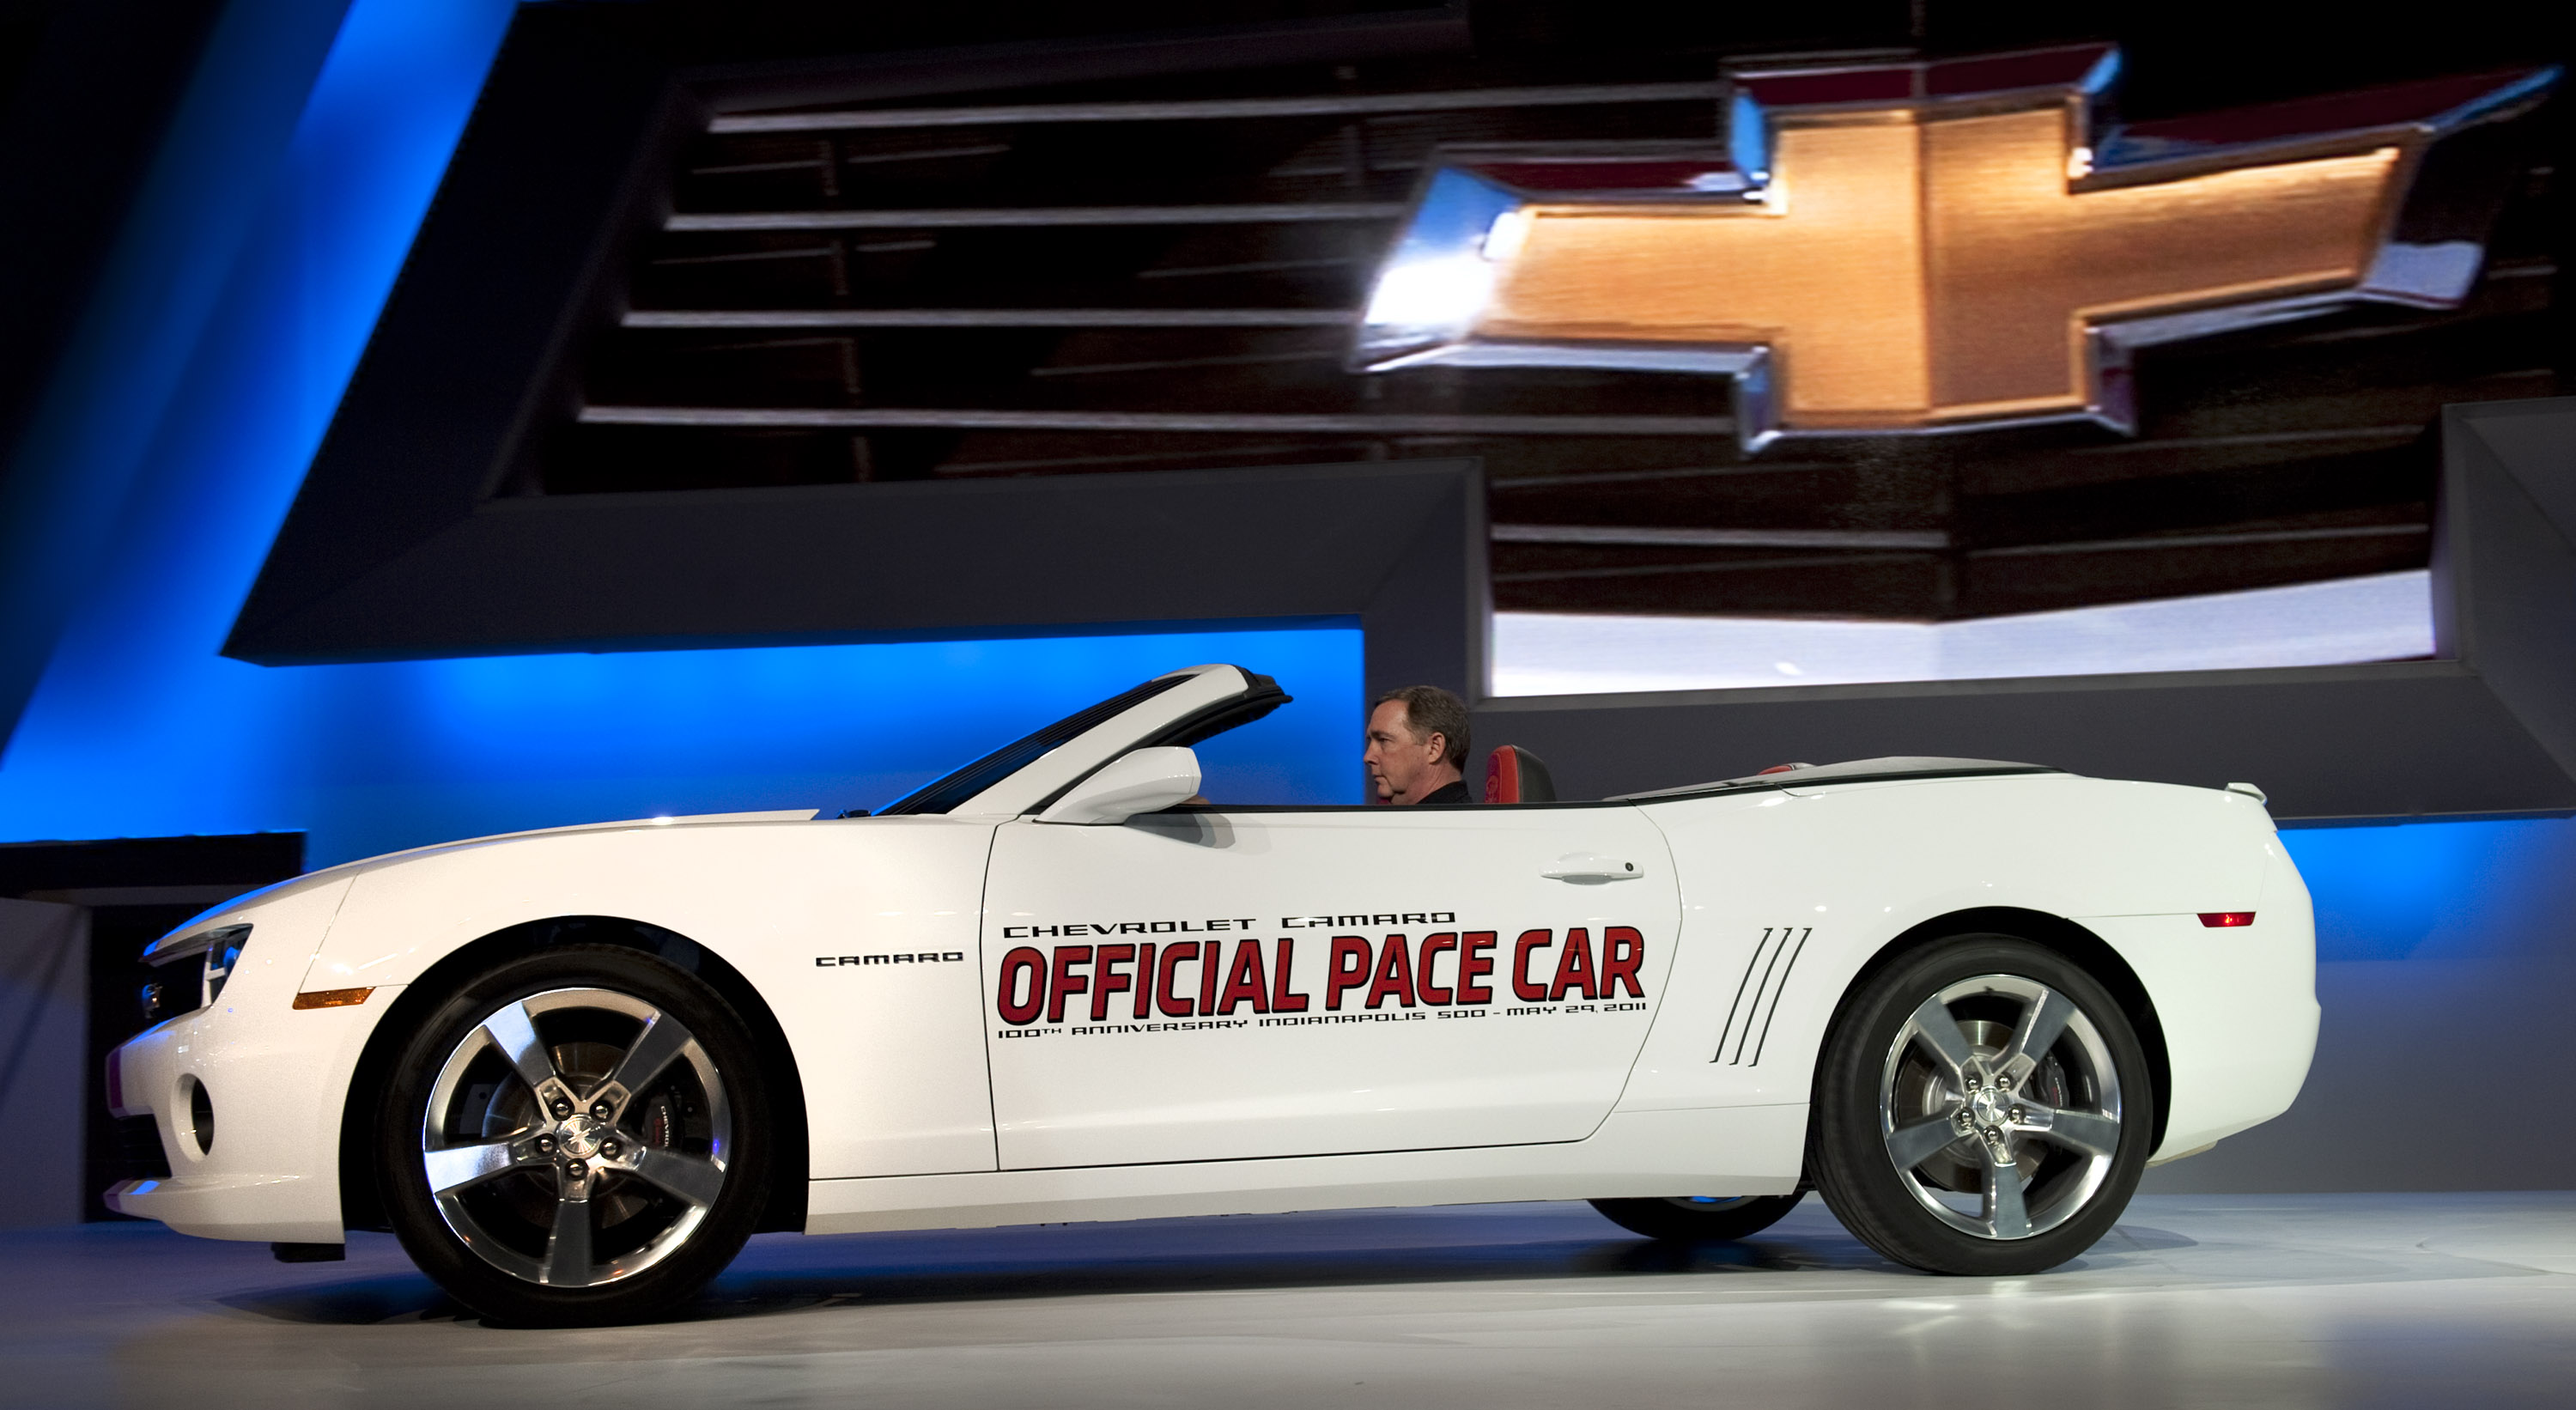 Marvelous 2011 Chevrolet Camaro Indianapolis 500 Special Edition Pace Car Wiring Digital Resources Remcakbiperorg